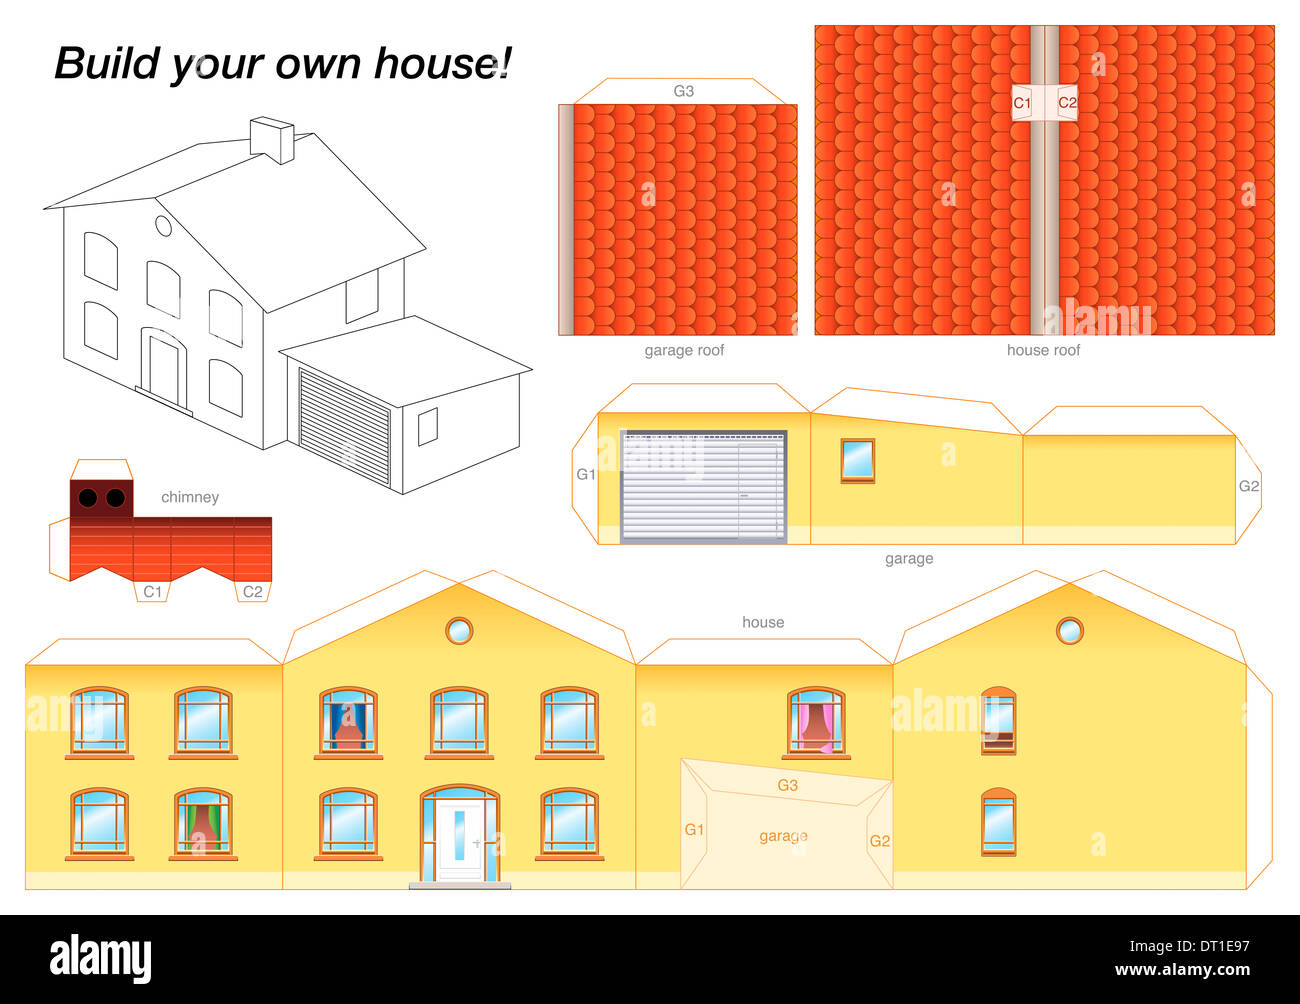 Paper Model Of A Yellow House With Garage   Easy To Make   Print It On